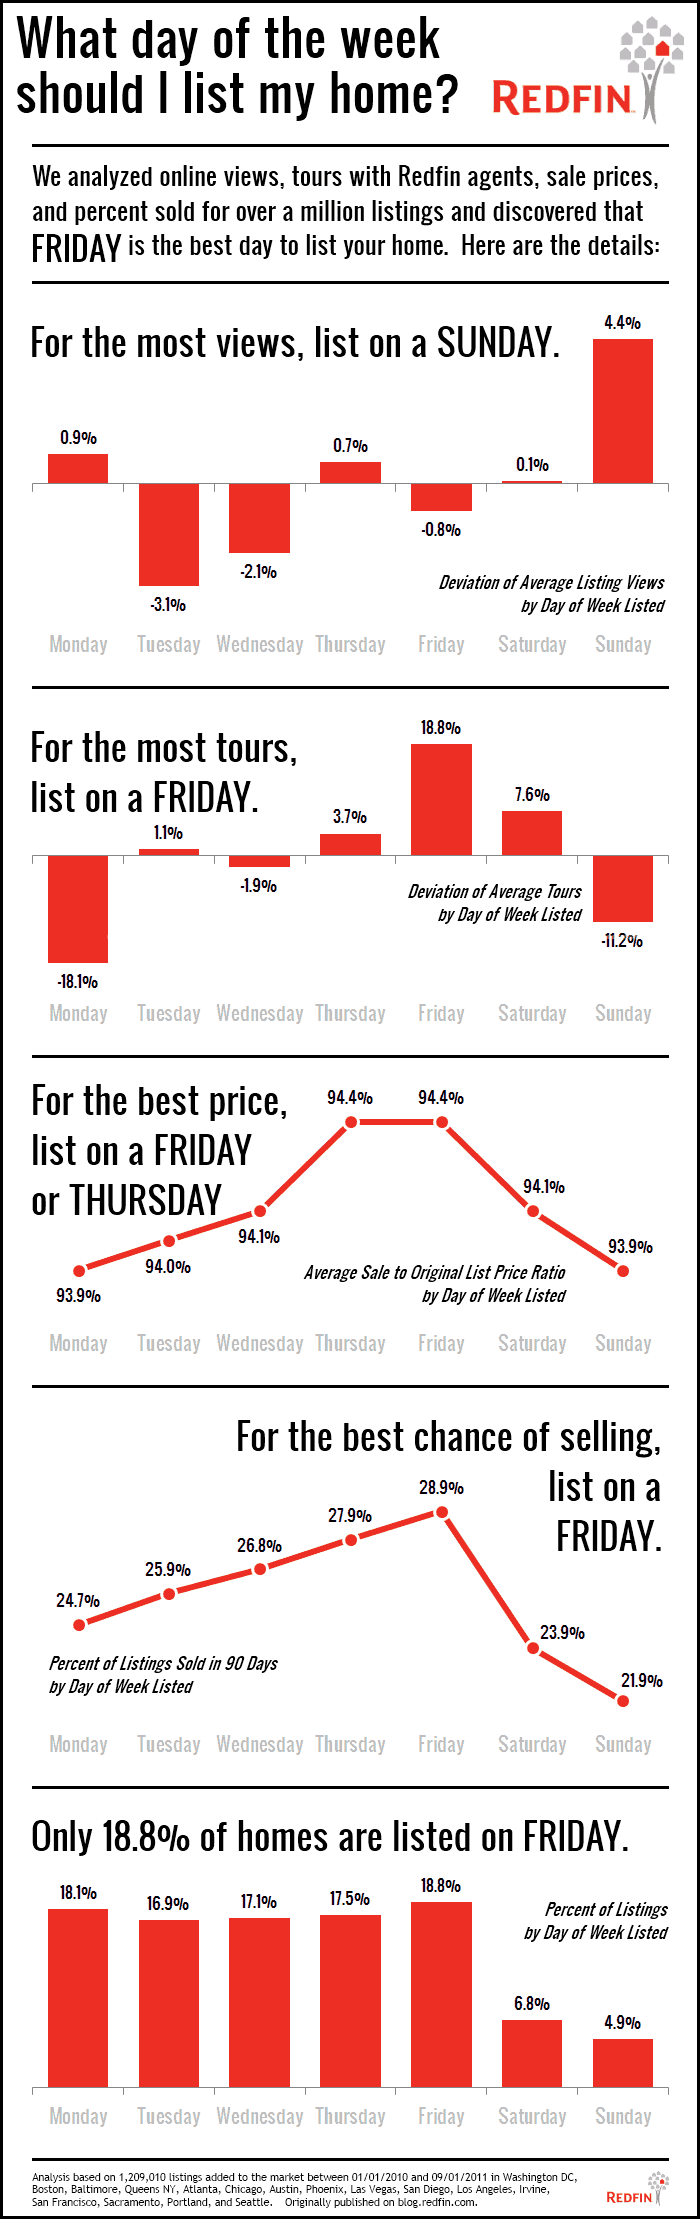 Listing-Day-of-Week-Graphs-FINAL_Redfin